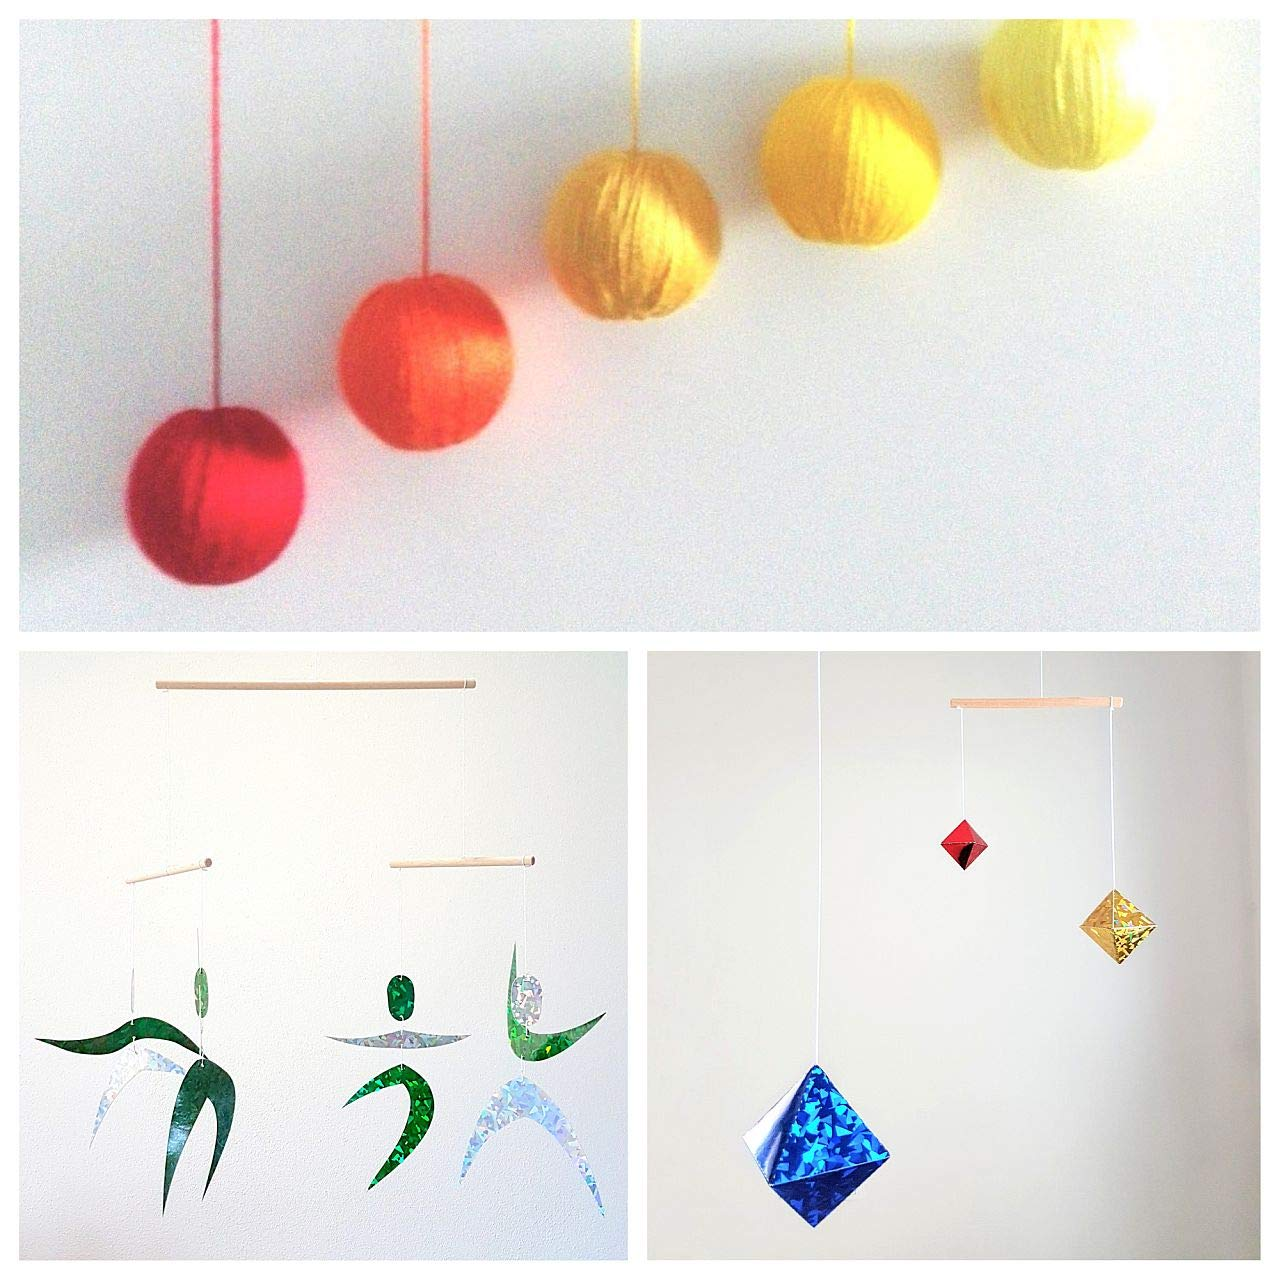 Set of 3 Montessori inspired mobiles - Orange Gobbi, Dancers, Octahedron. Montessori mobile. Baby mobile. Hanging mobile. Crib toy.